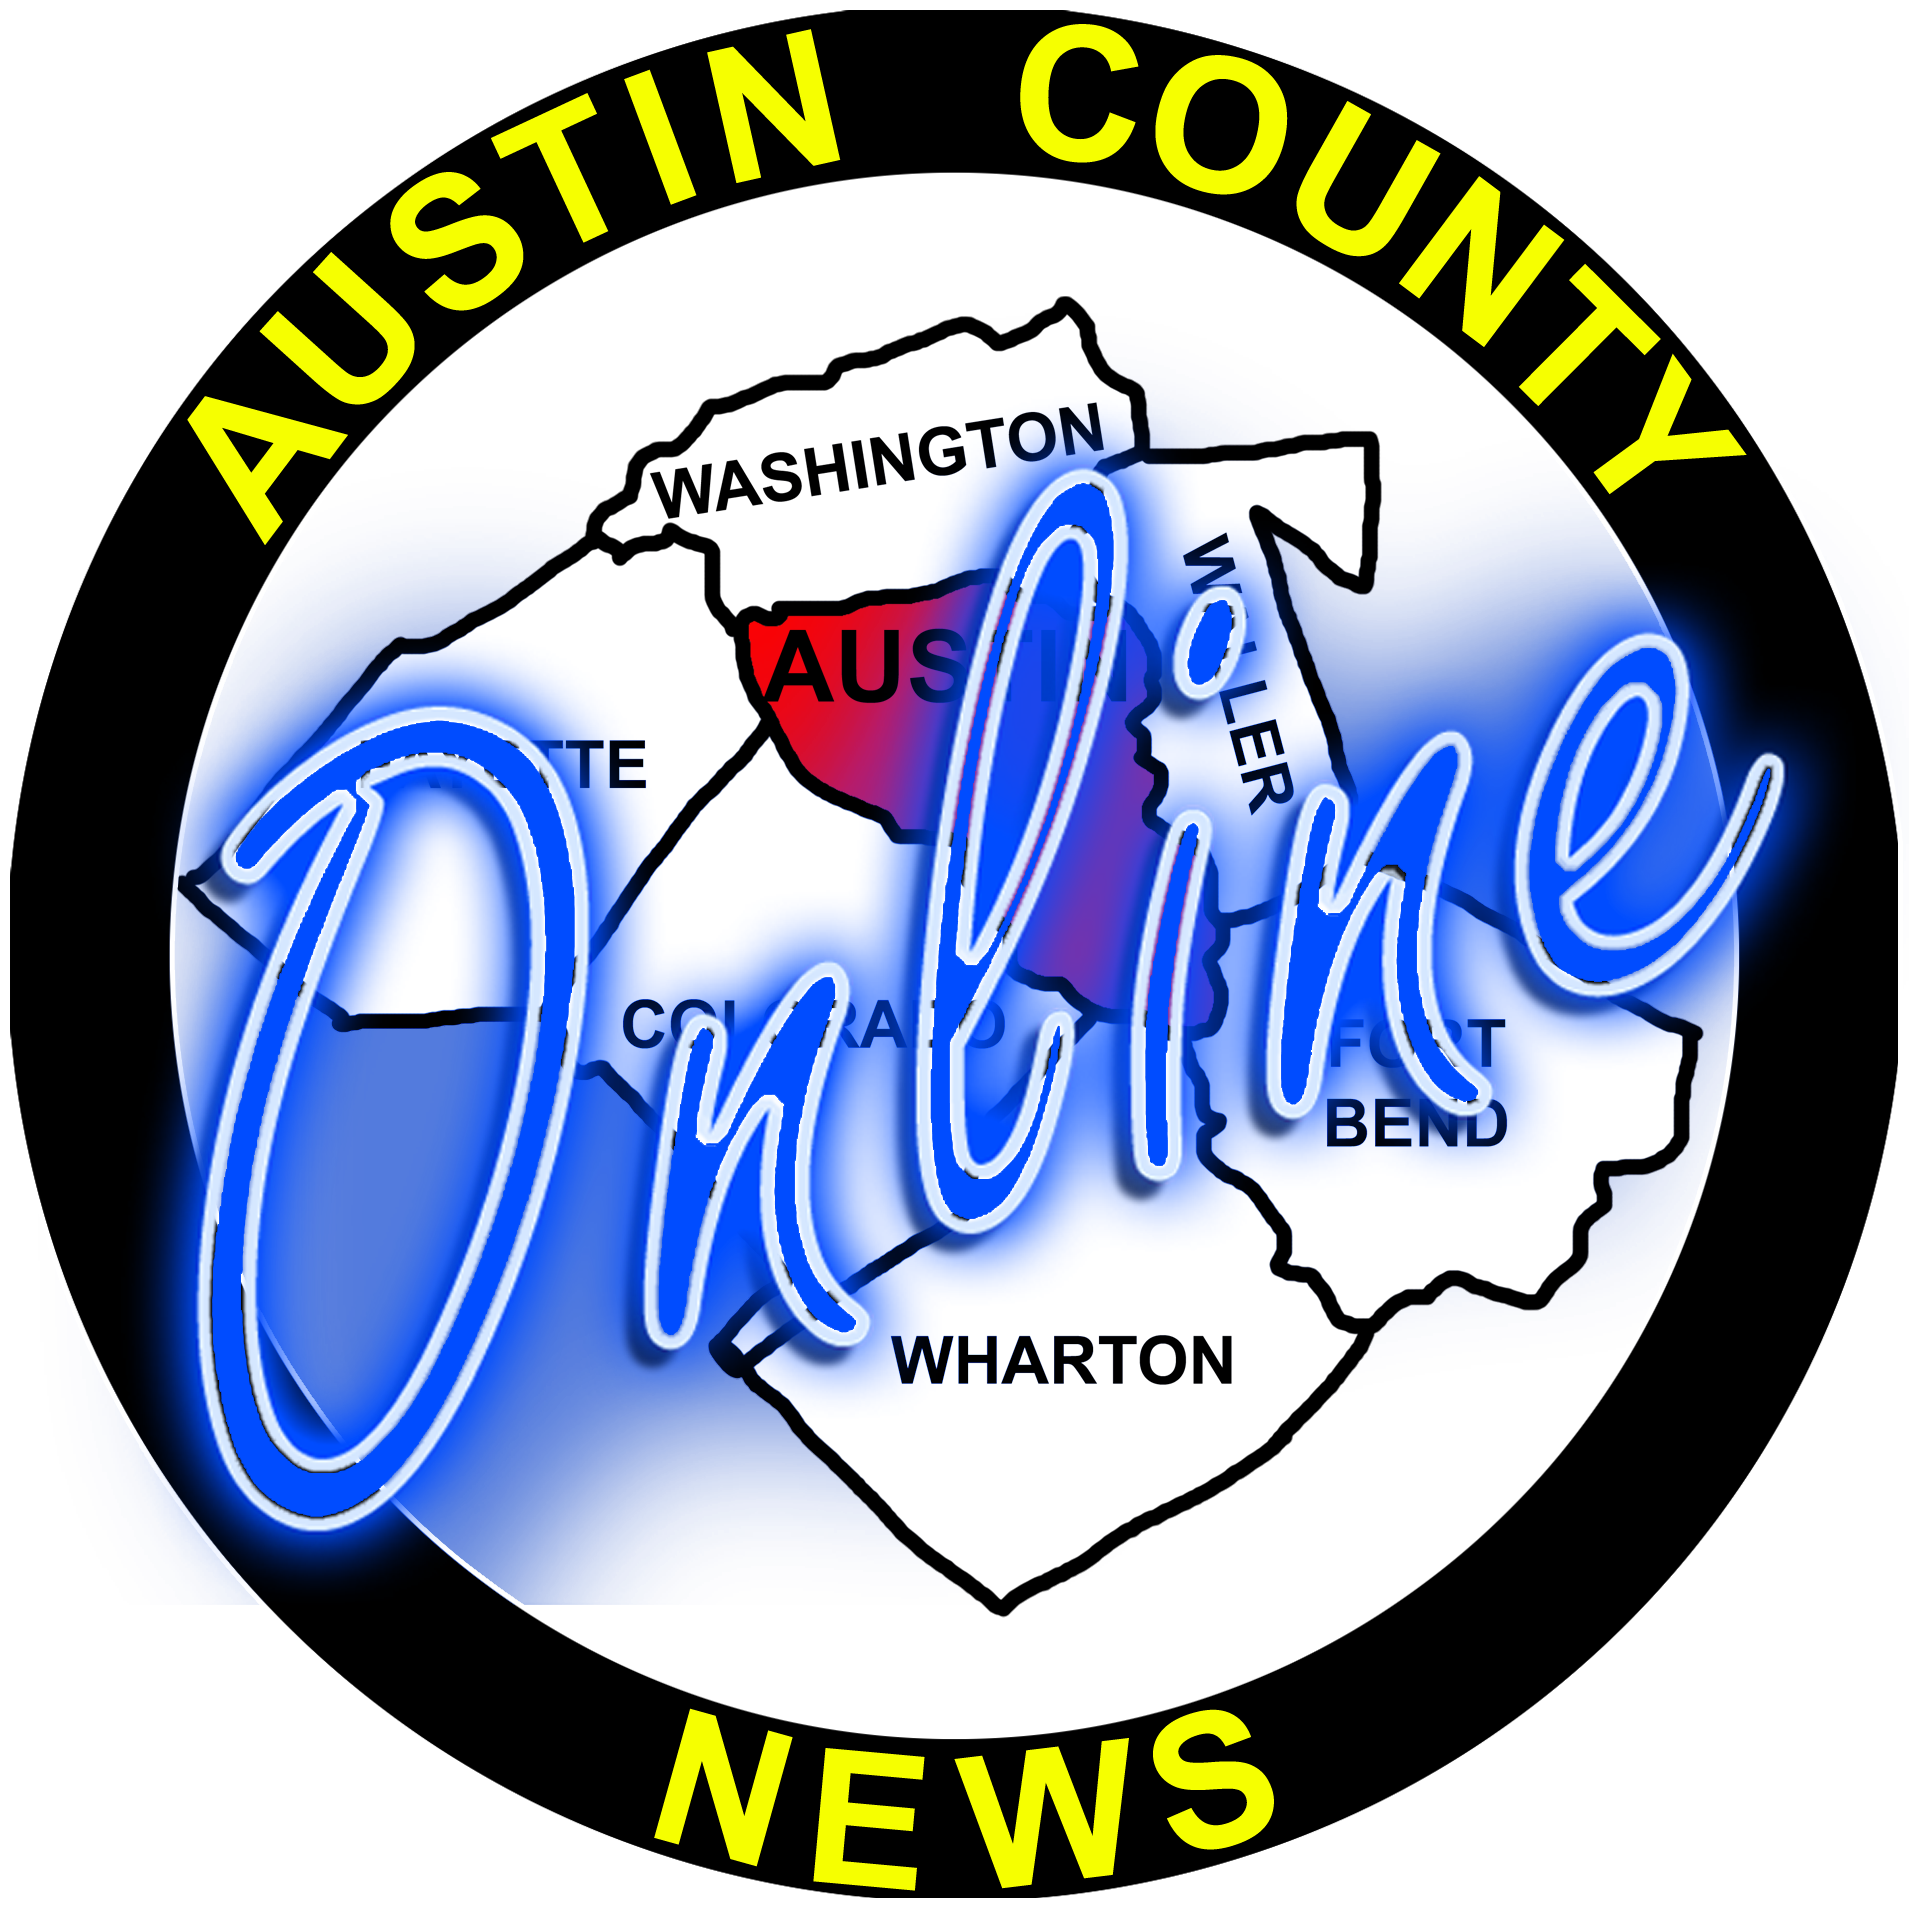 Austin County News Online Advertising